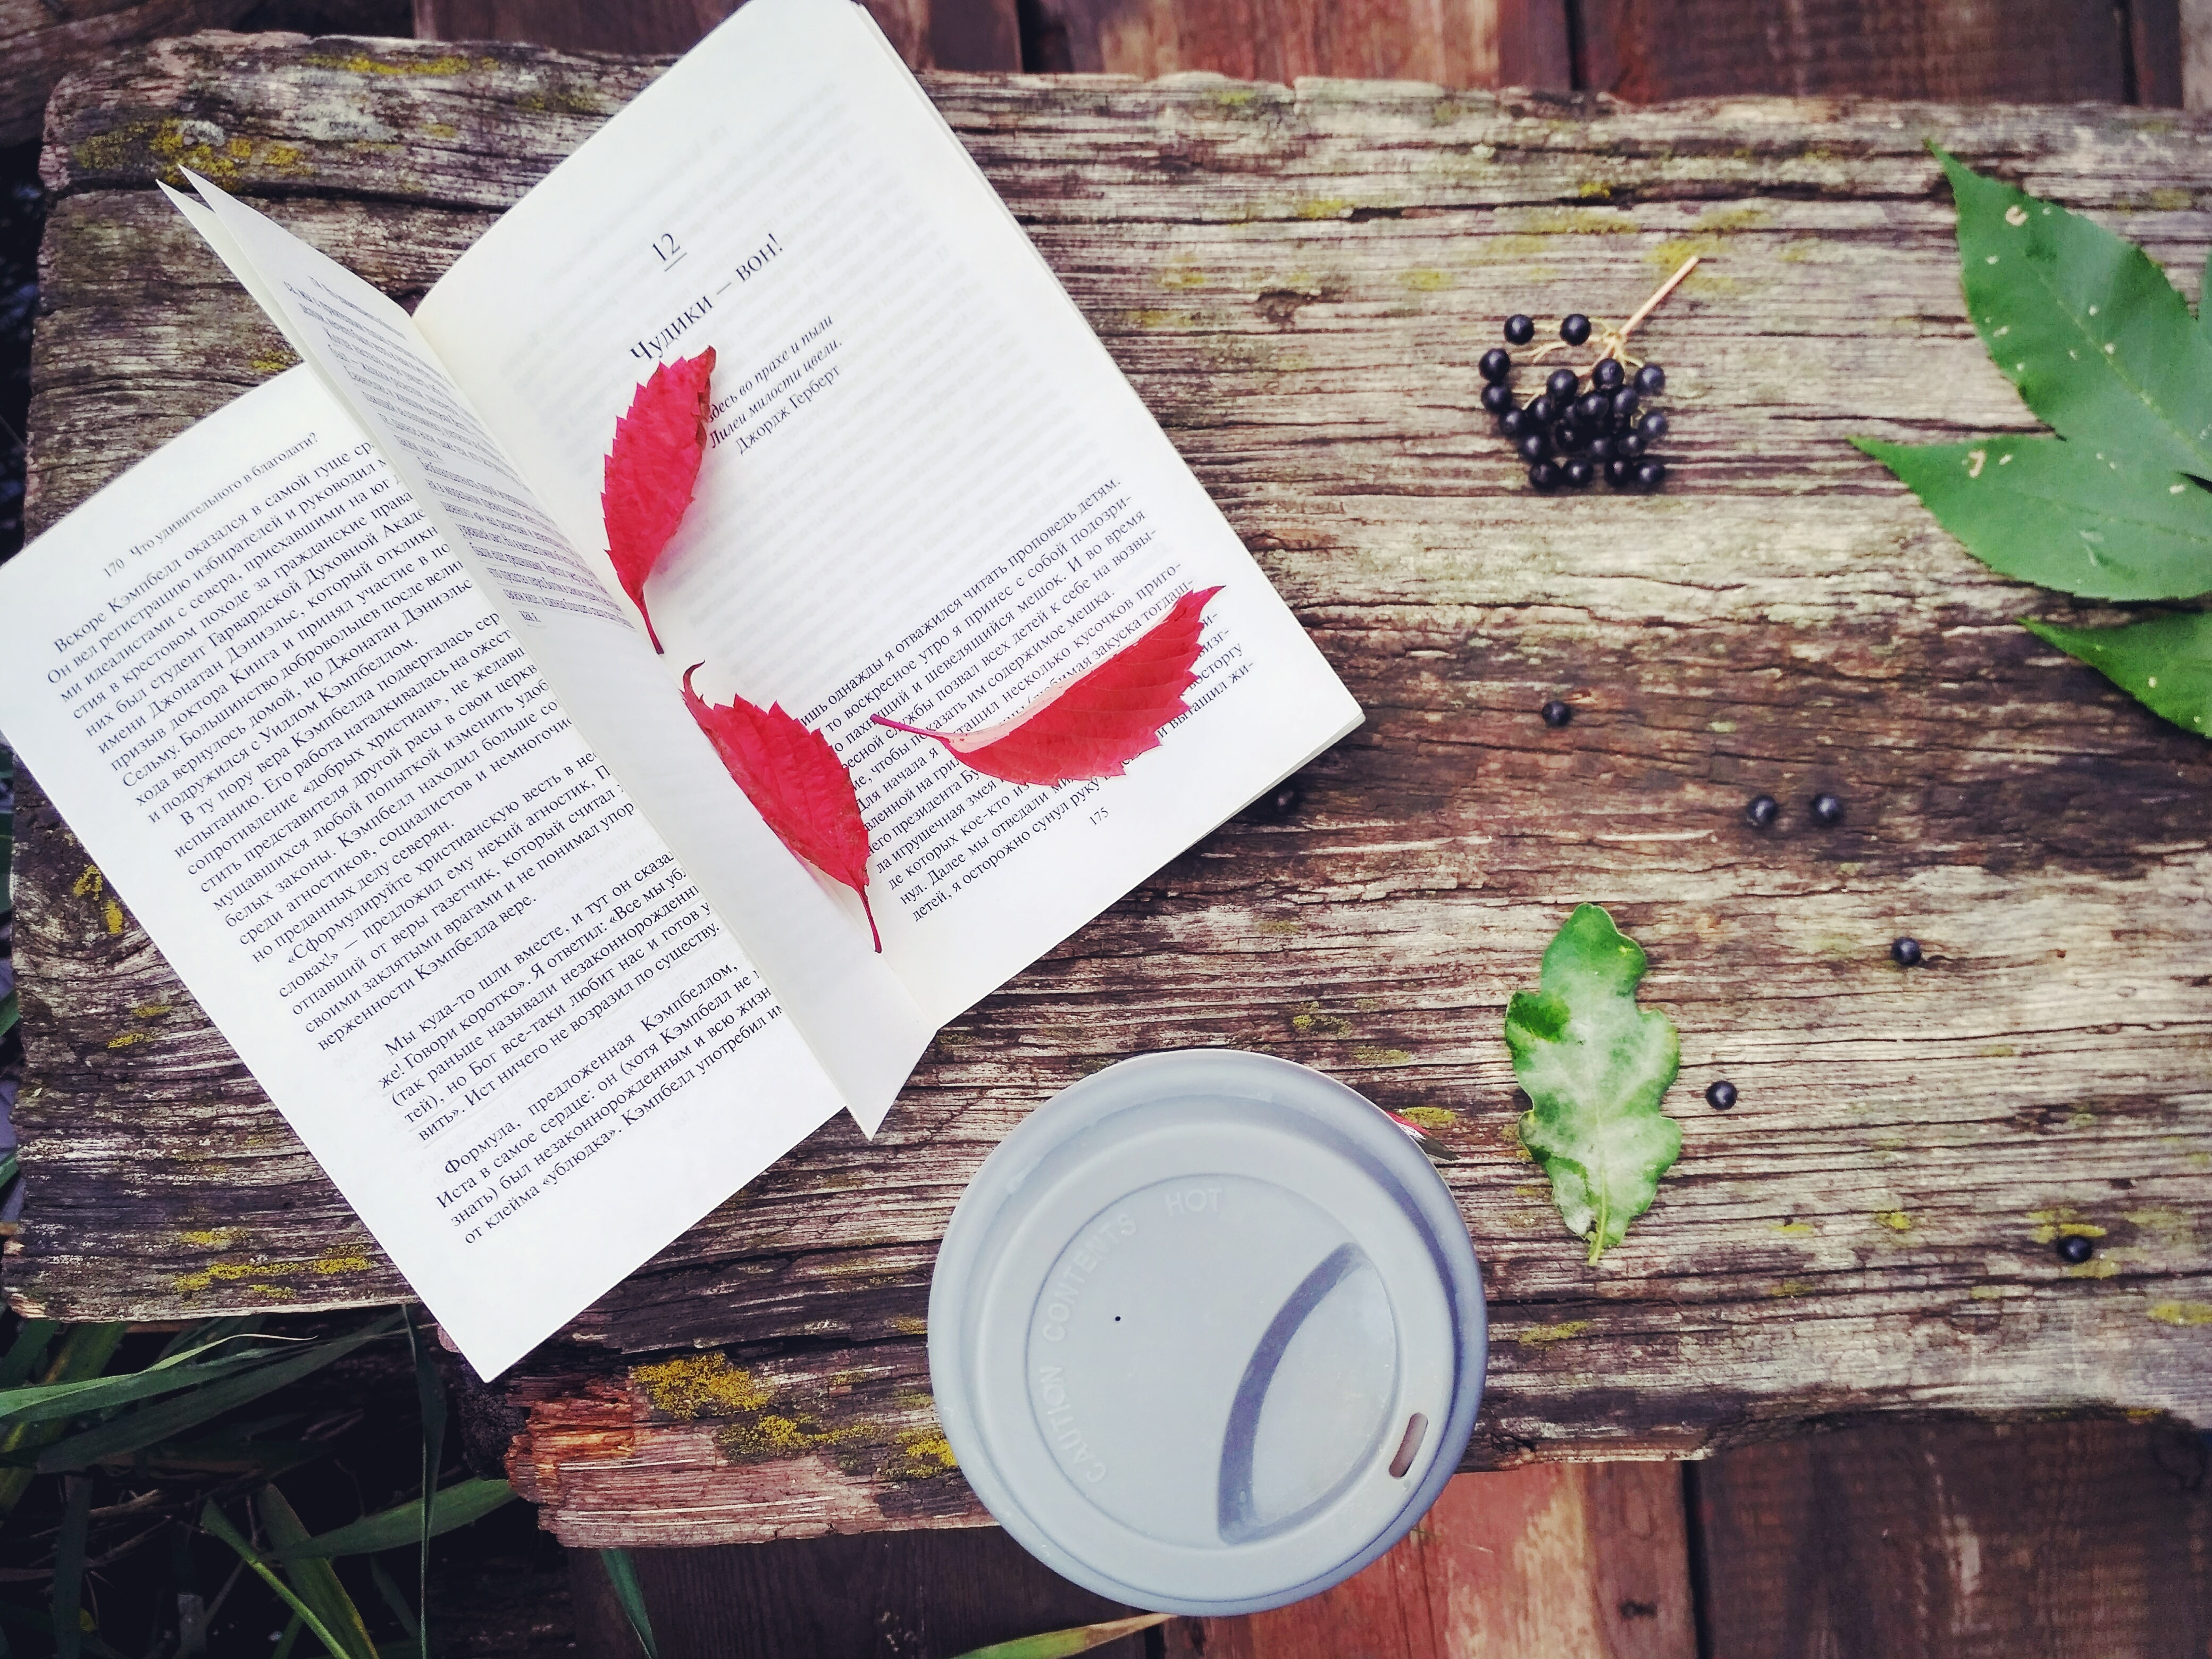 red leaves on opened book